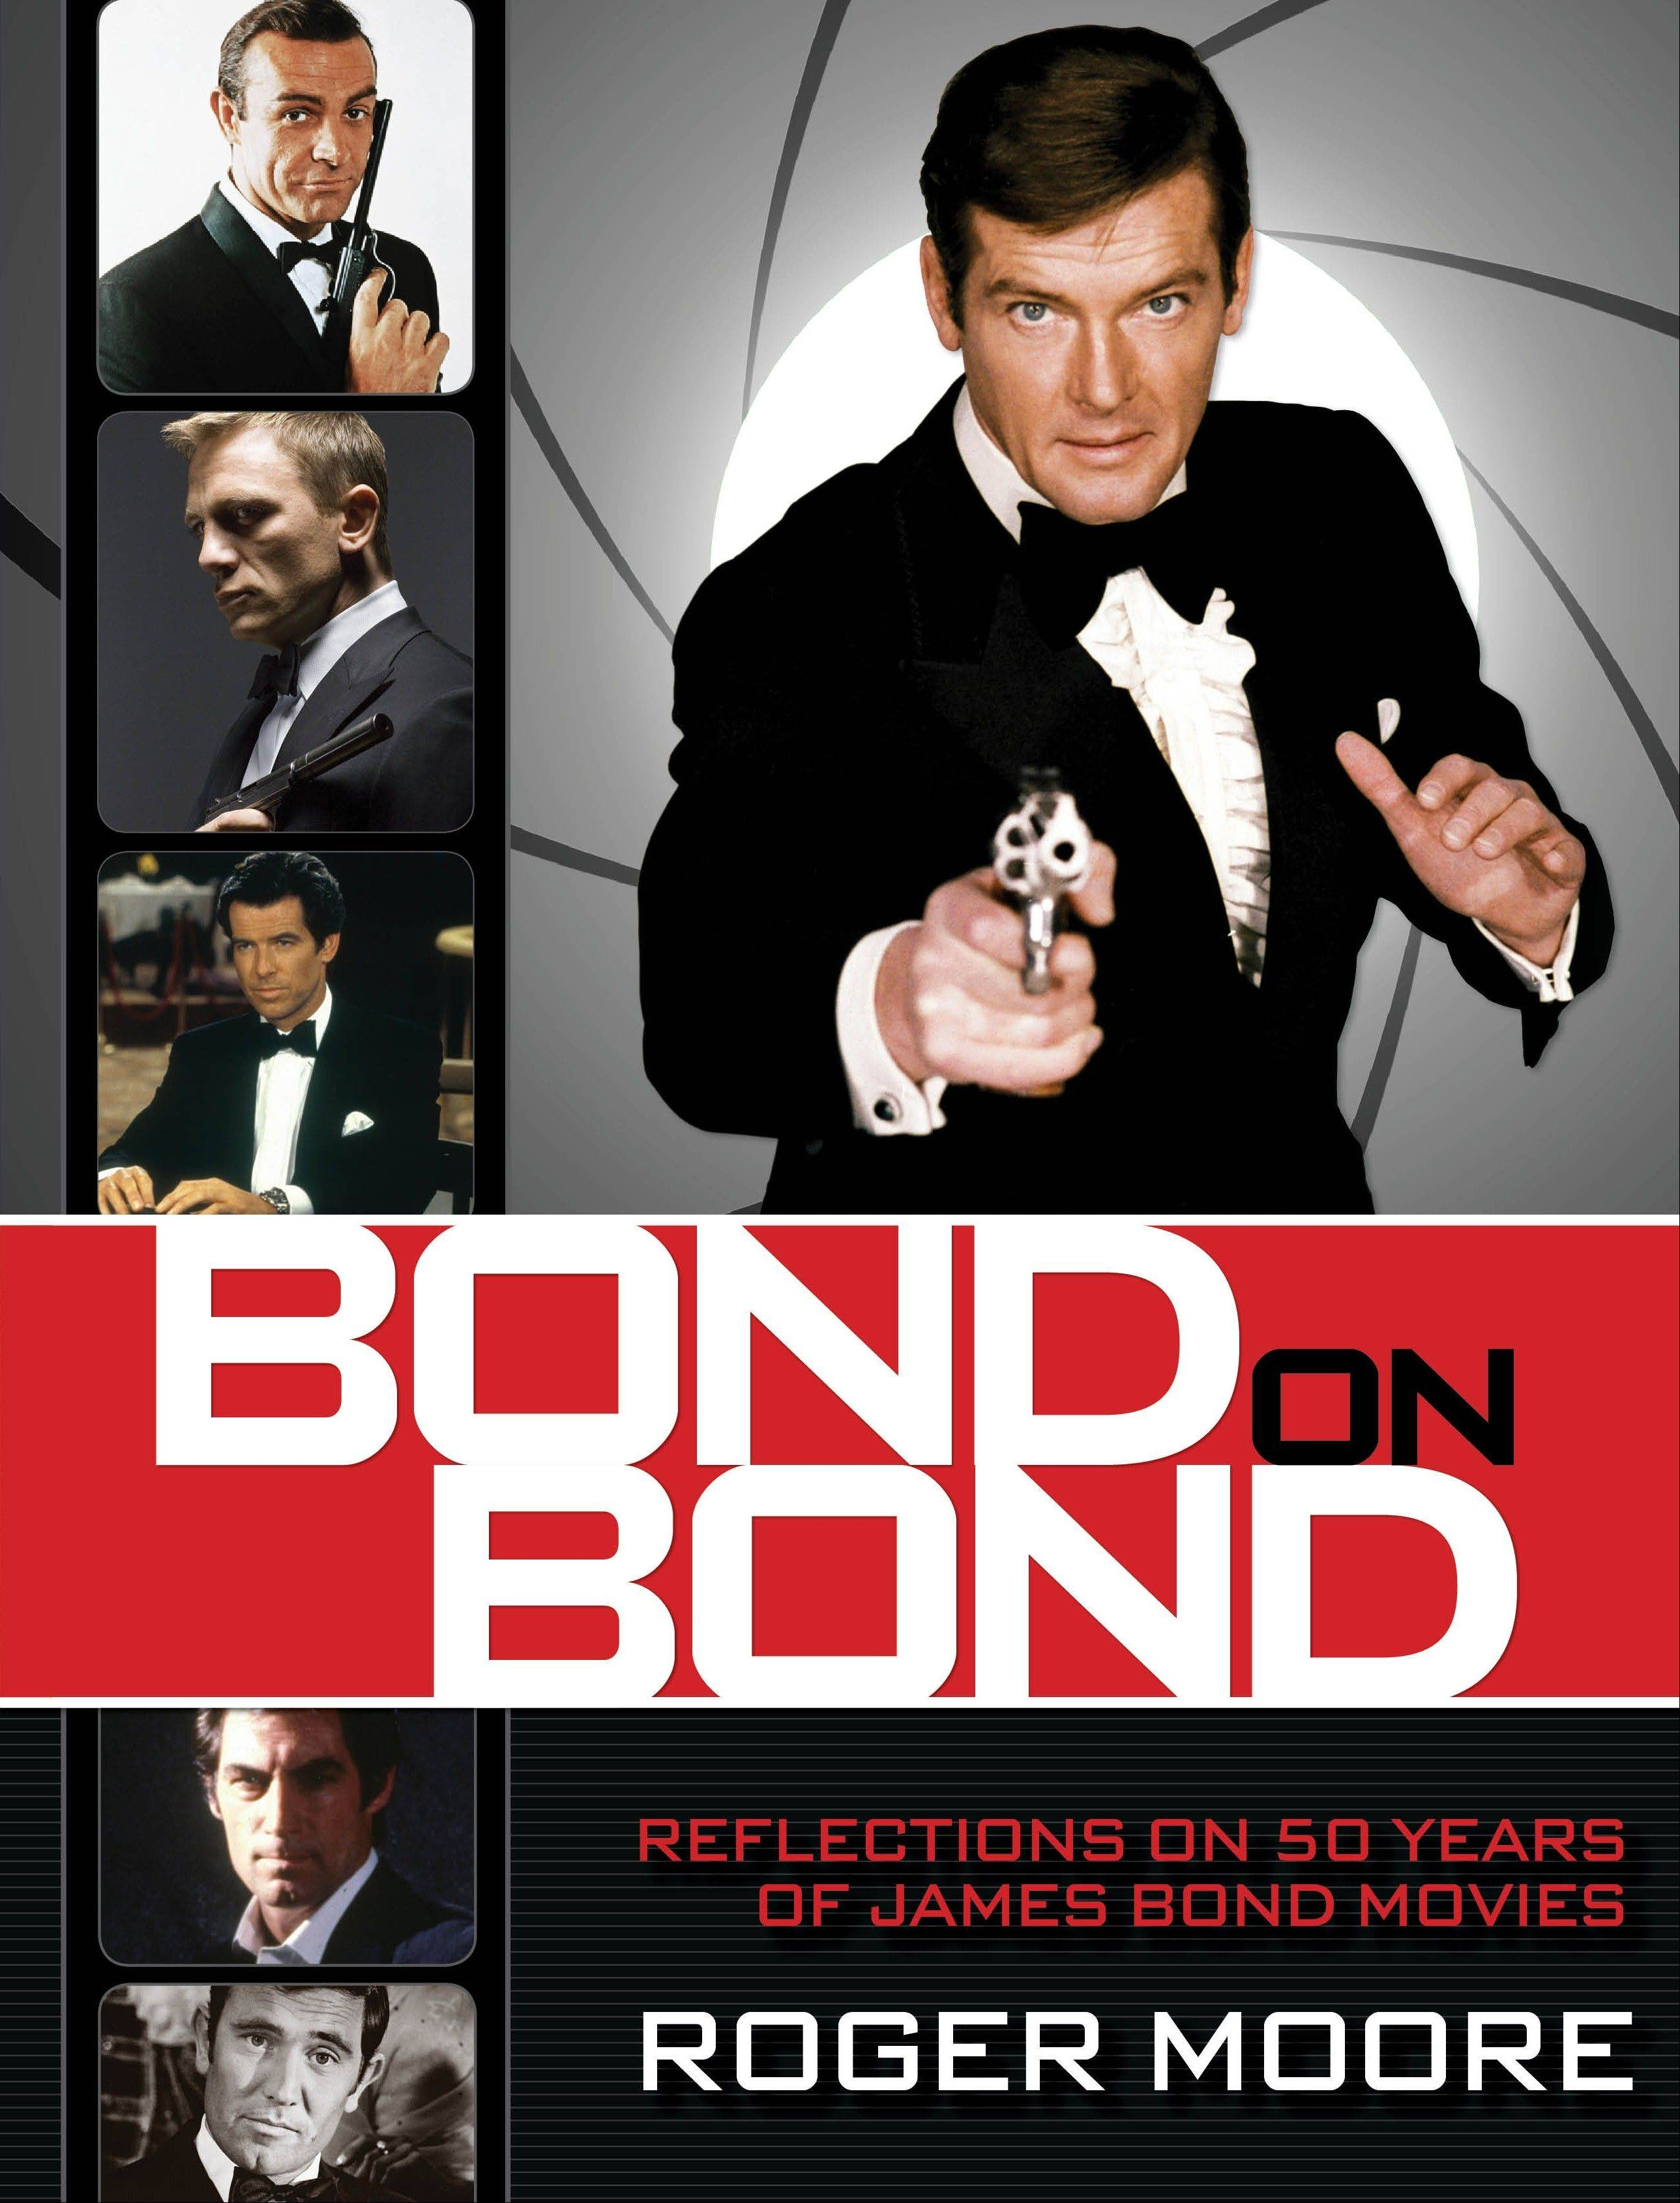 """Bond on Bond: Reflections on 50 Years of James Bond Movies"" by Roger Moore"